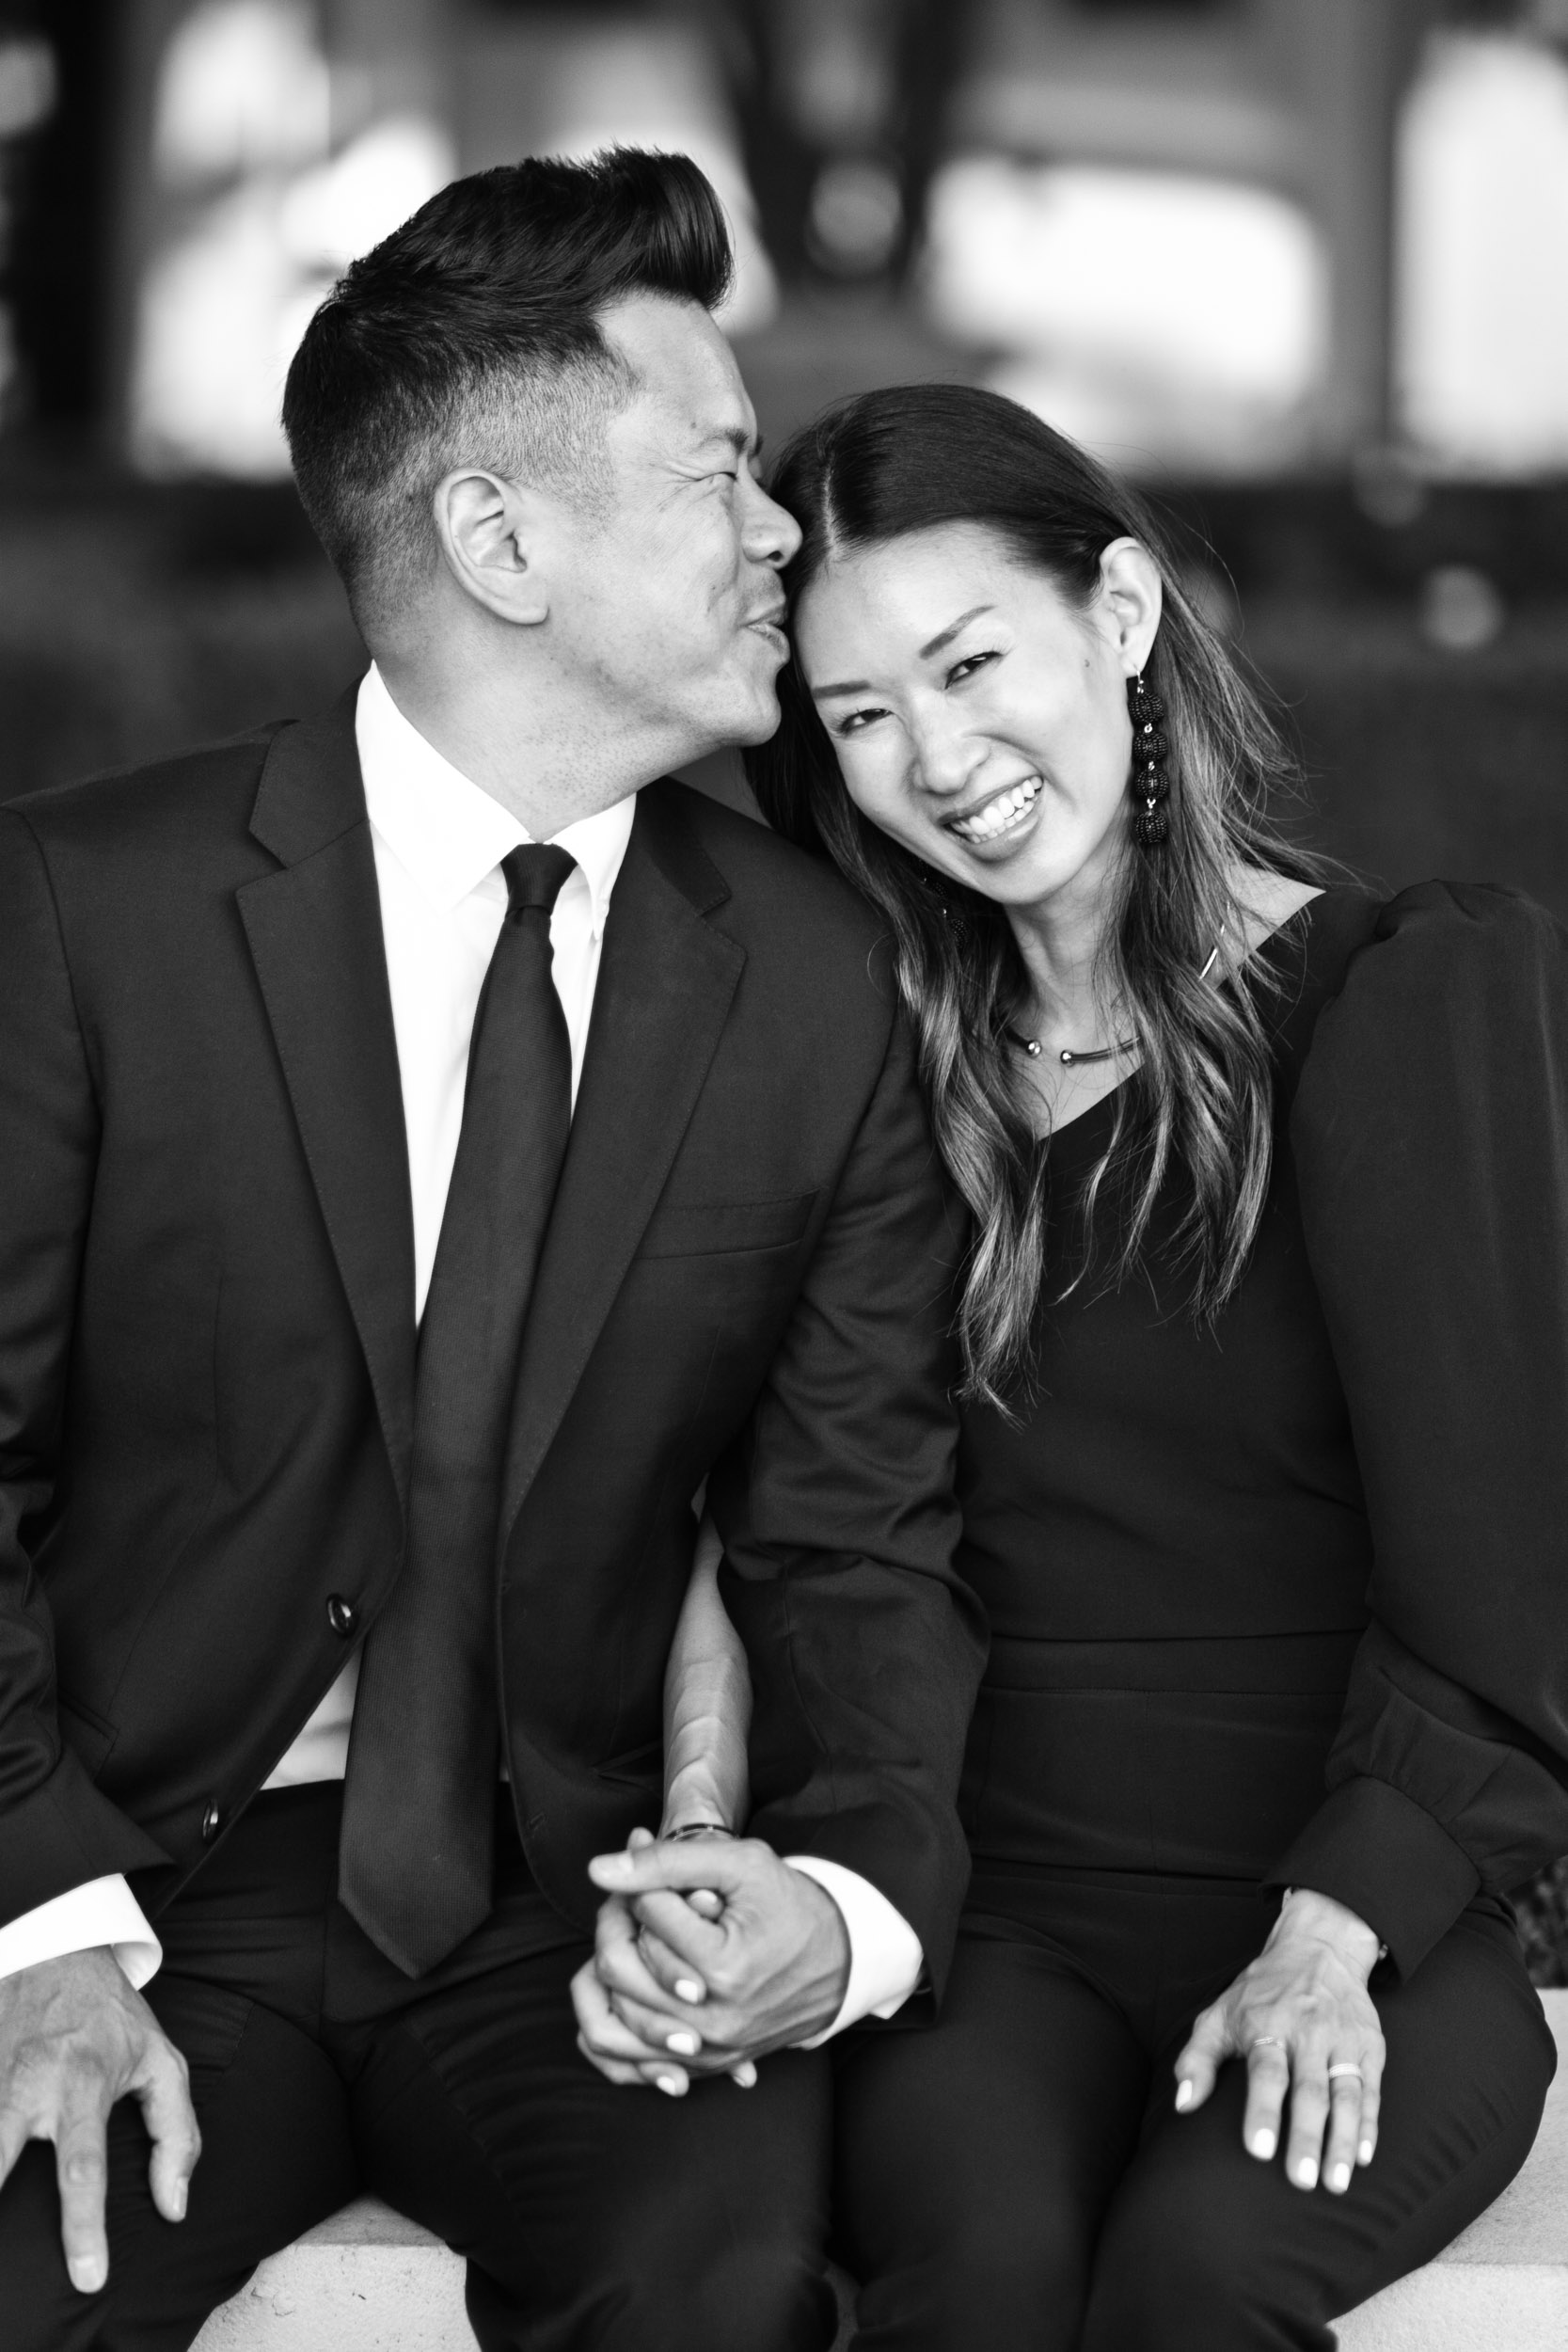 Dad and mom holding hands and smiling at Pelican Hill Resort in Newport Beach, California. Christine Kong of Daily Kongfidence.